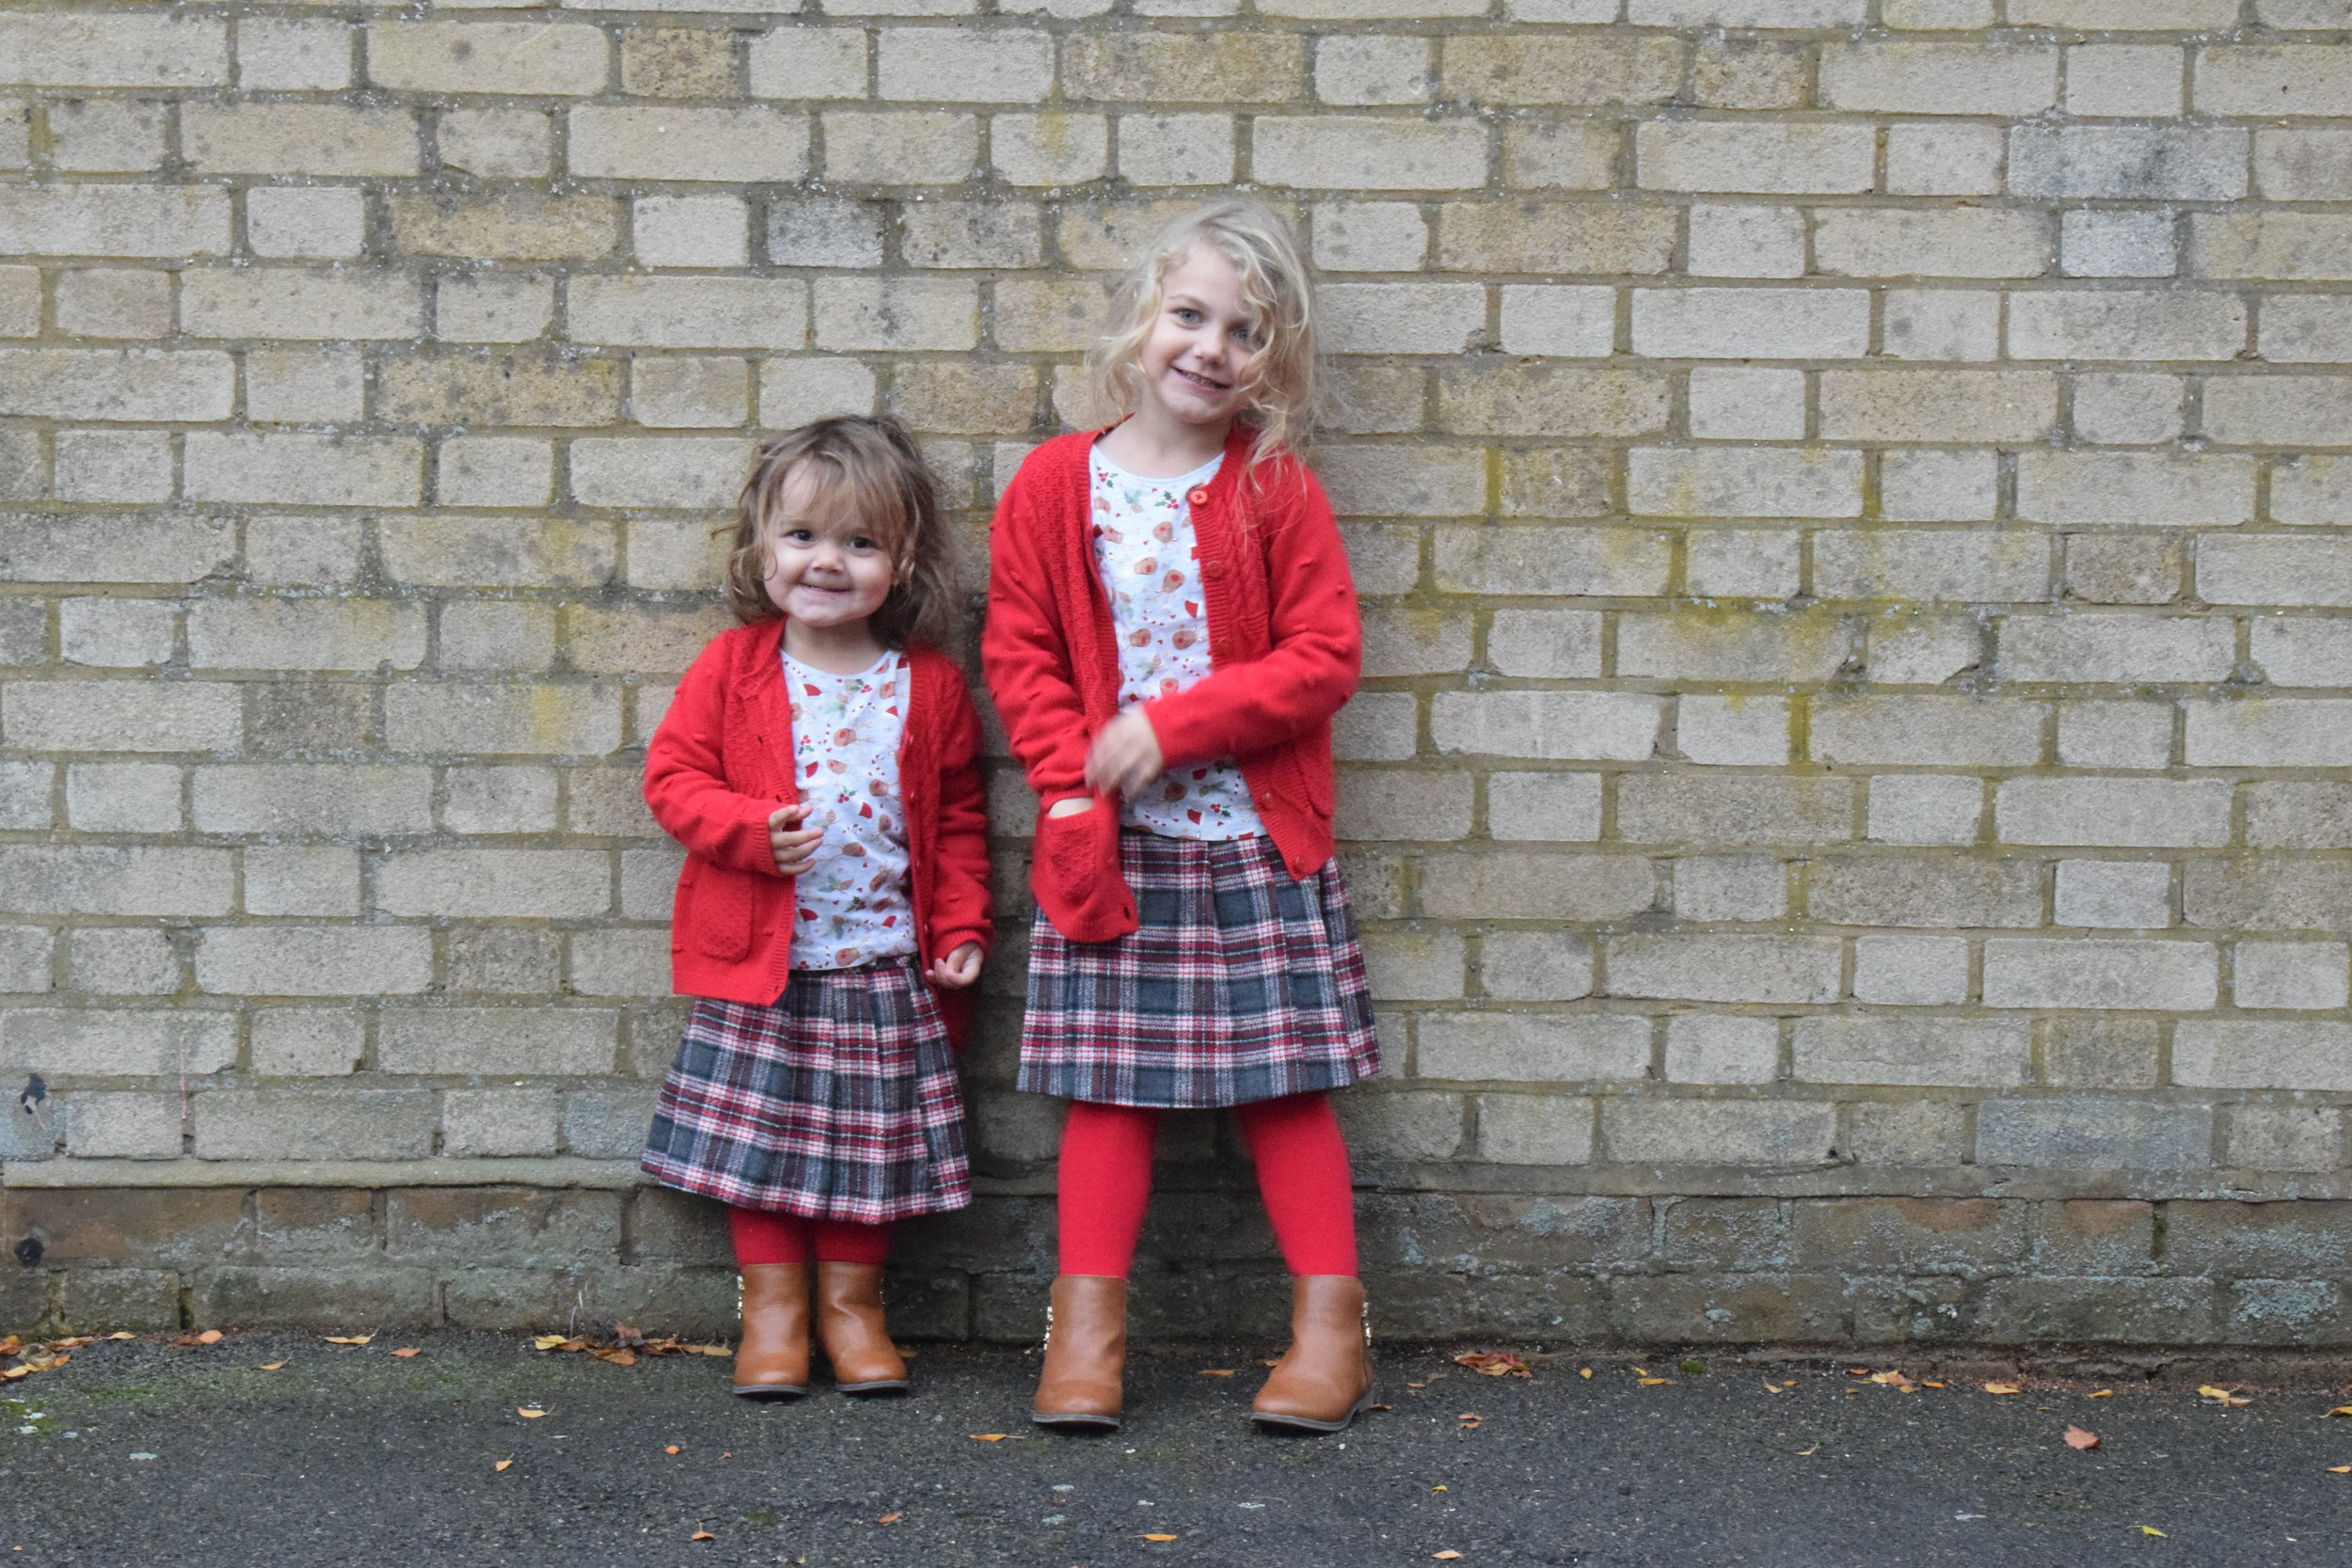 Matching tartan outfits from Sainsbury's